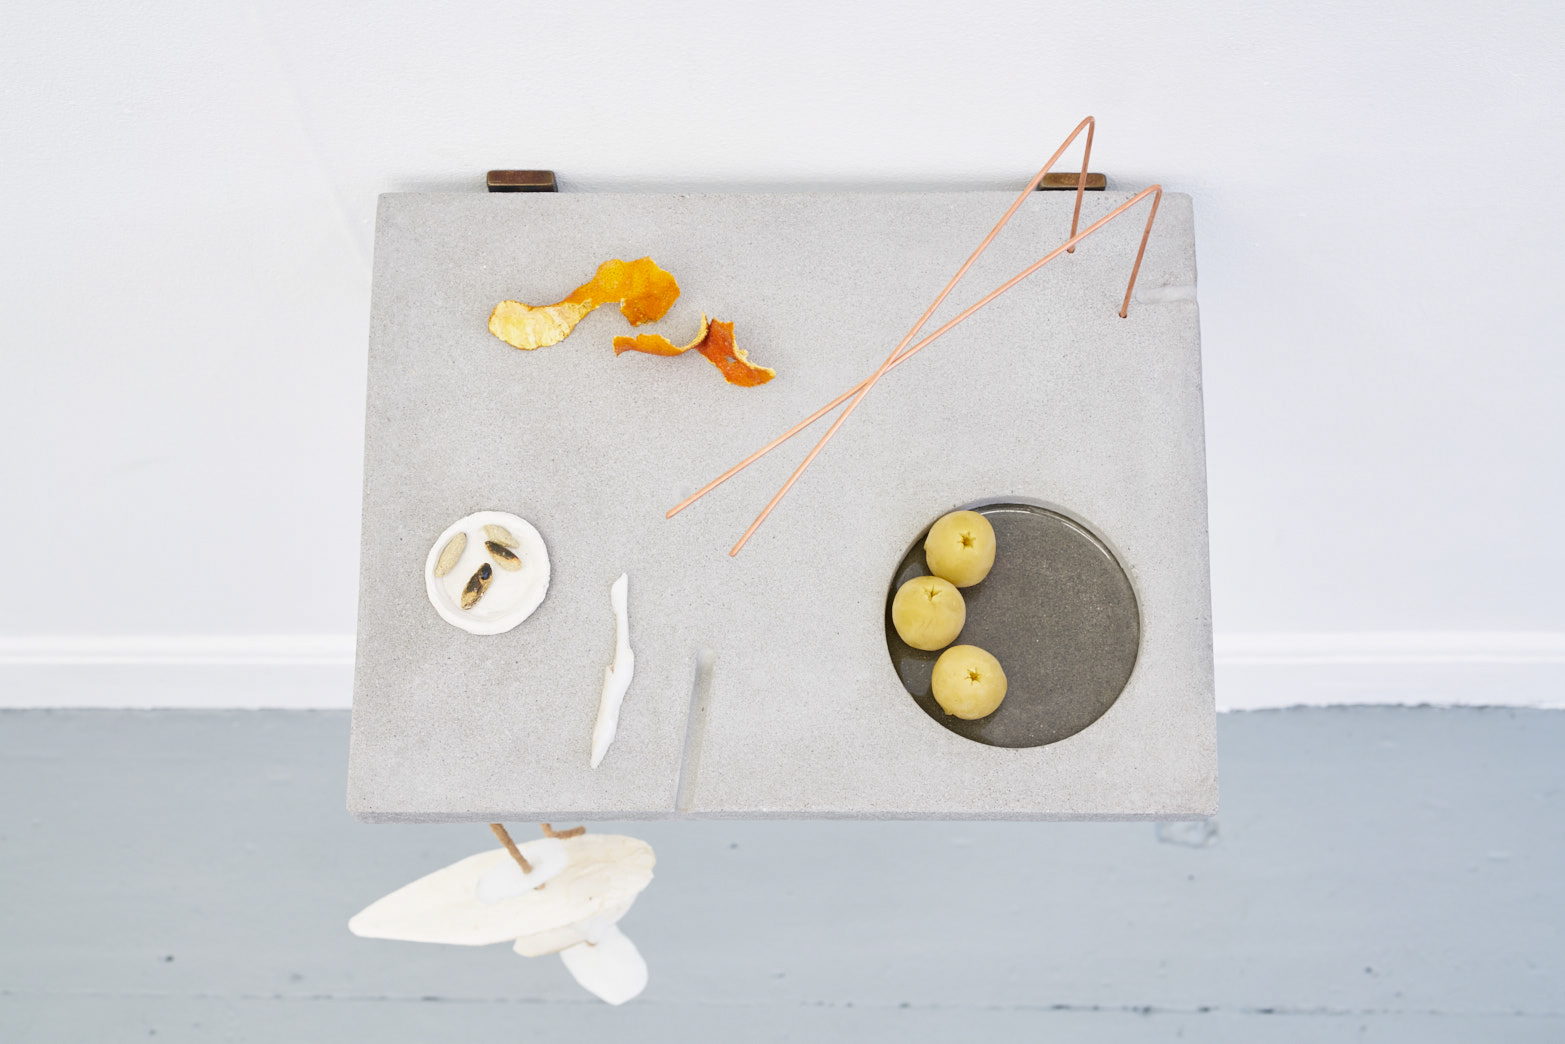 Victoria Adam, Personal Unique pH (potpourri), 2018, Plaster polymer, copper rods, leather, cuttle sh, soap, orange peel, airdry clay, glazed ceramic, beeswax, resin, photo: Original&theCopy